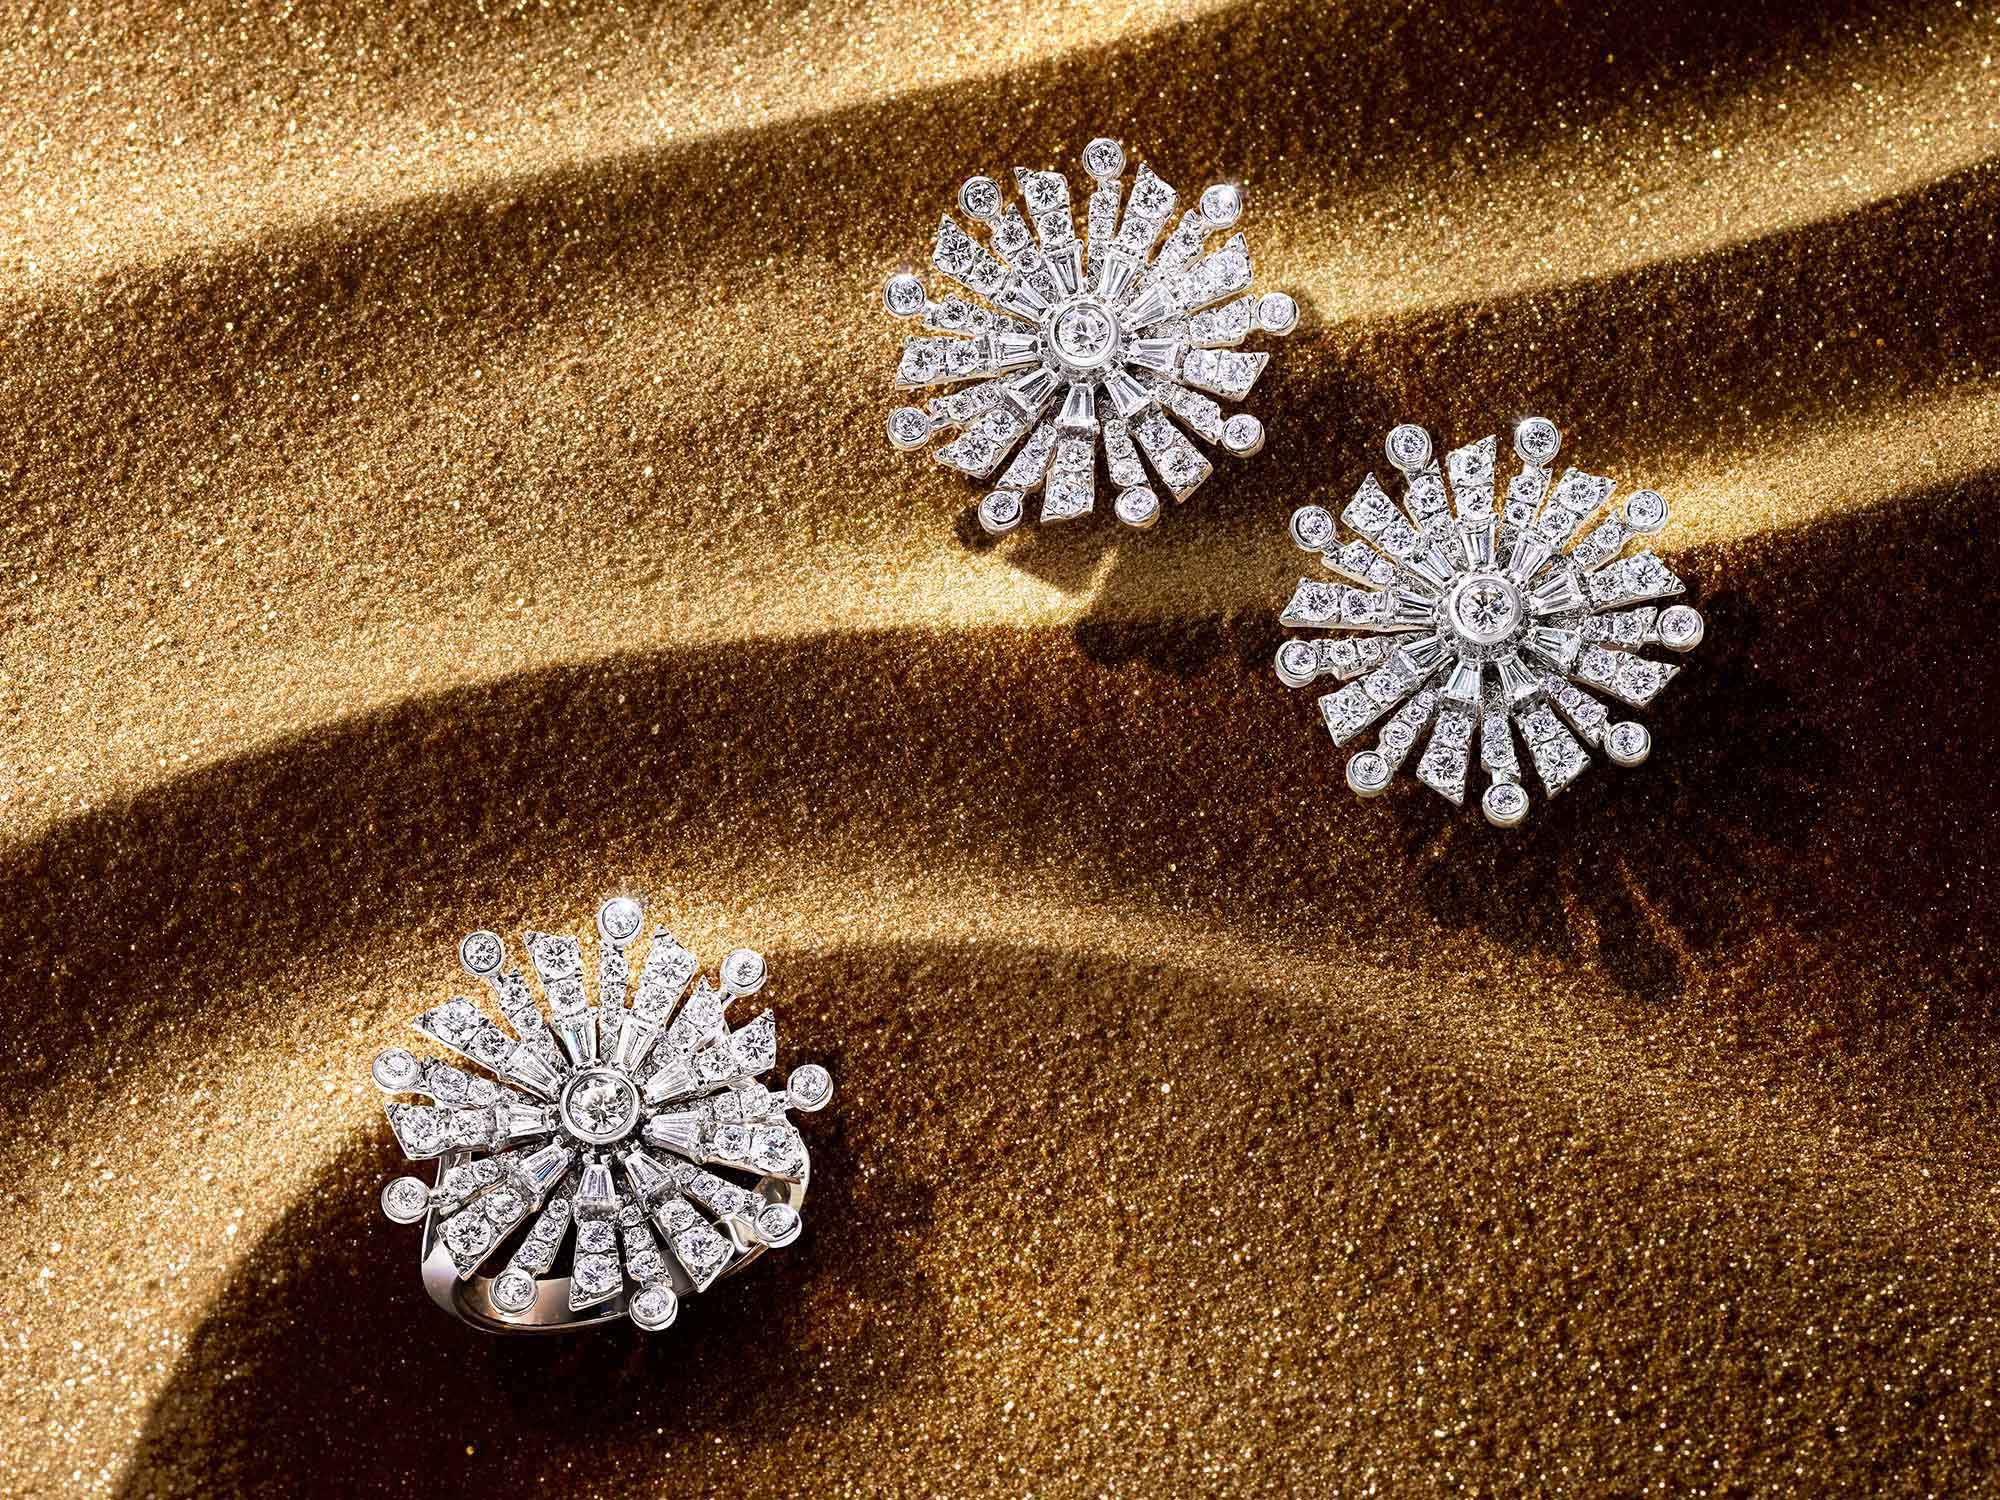 The Graff New Dawn diamond earrings and ring from the Tribal jewellery collection, on sand